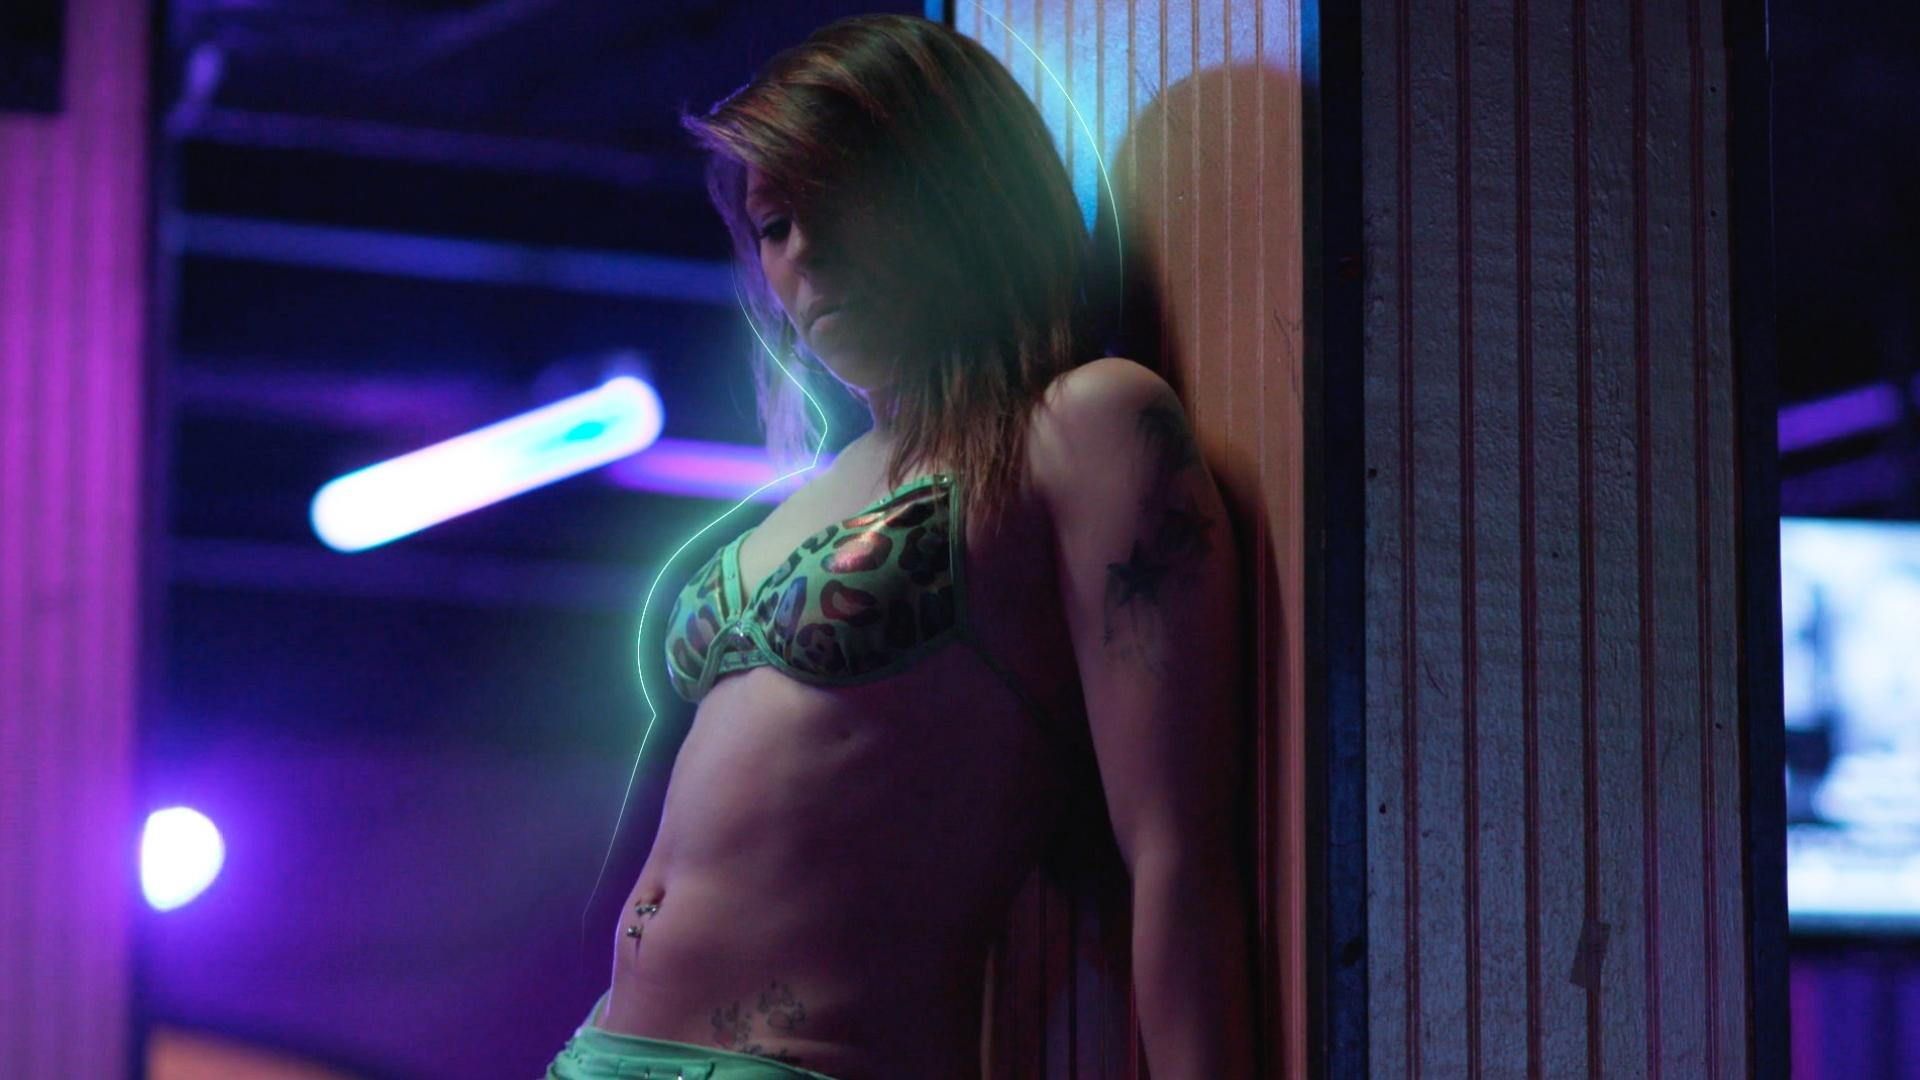 How to Treat Strippers, According to Strippers